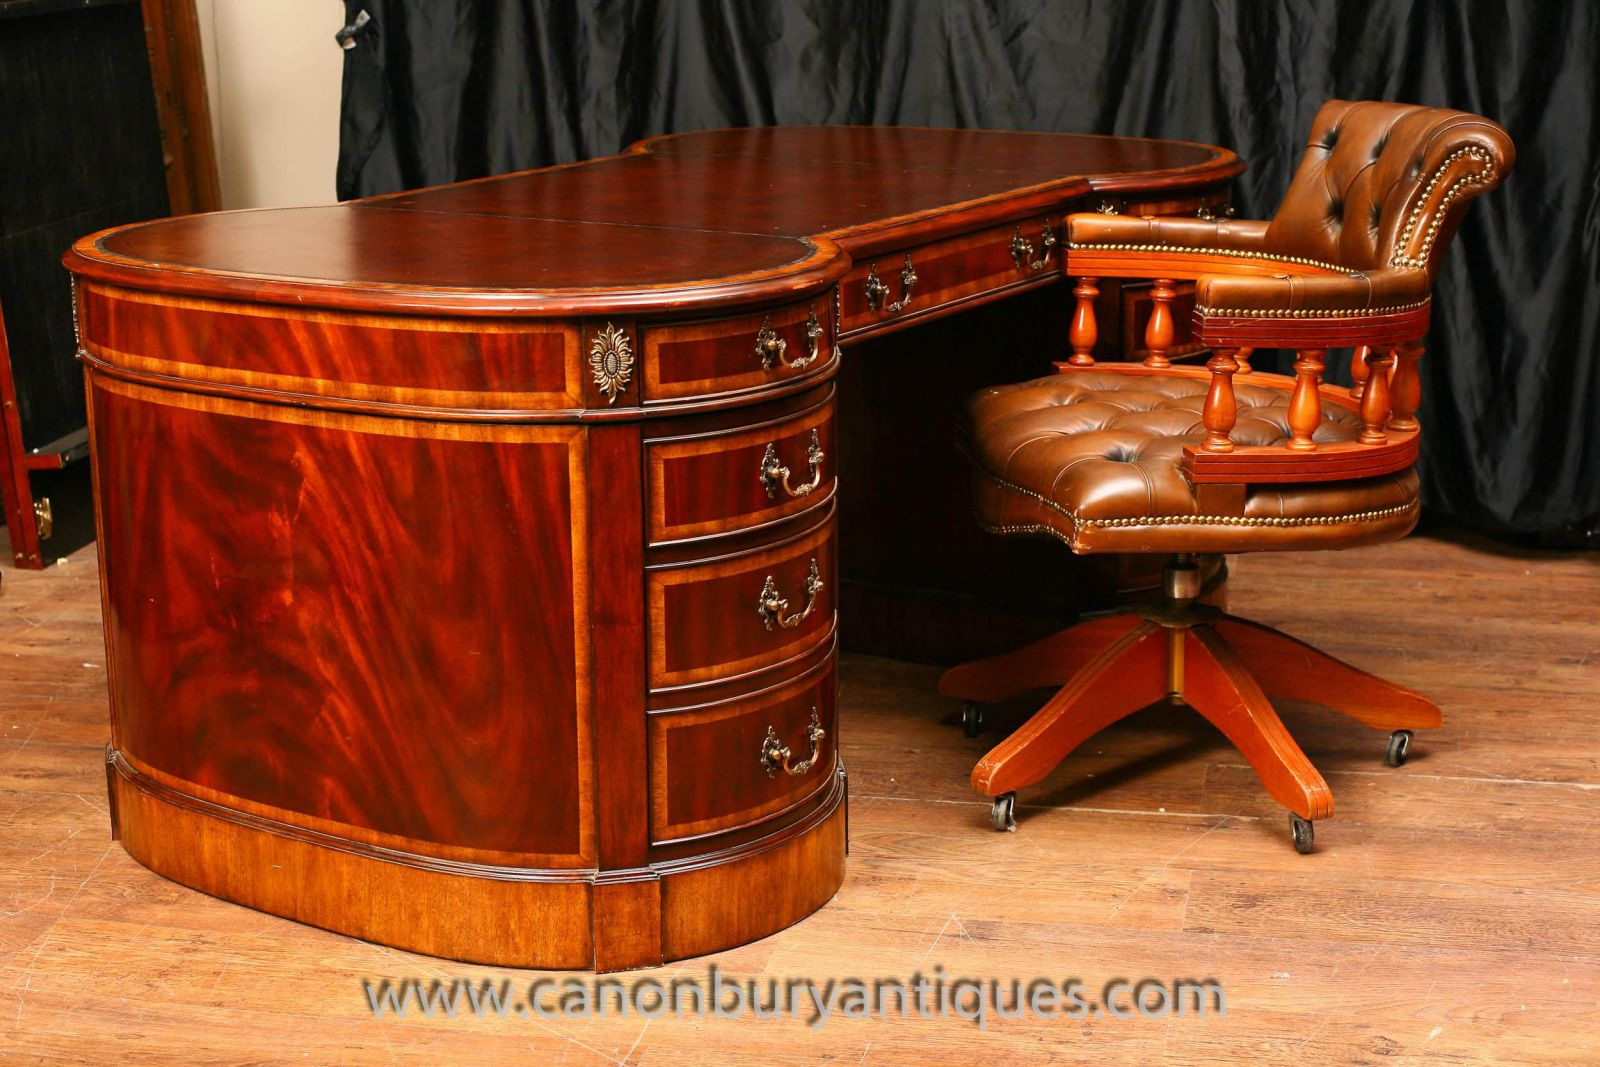 Regency Mahogany Desk and Chair Set www_canonburyantiques_com (12)-2